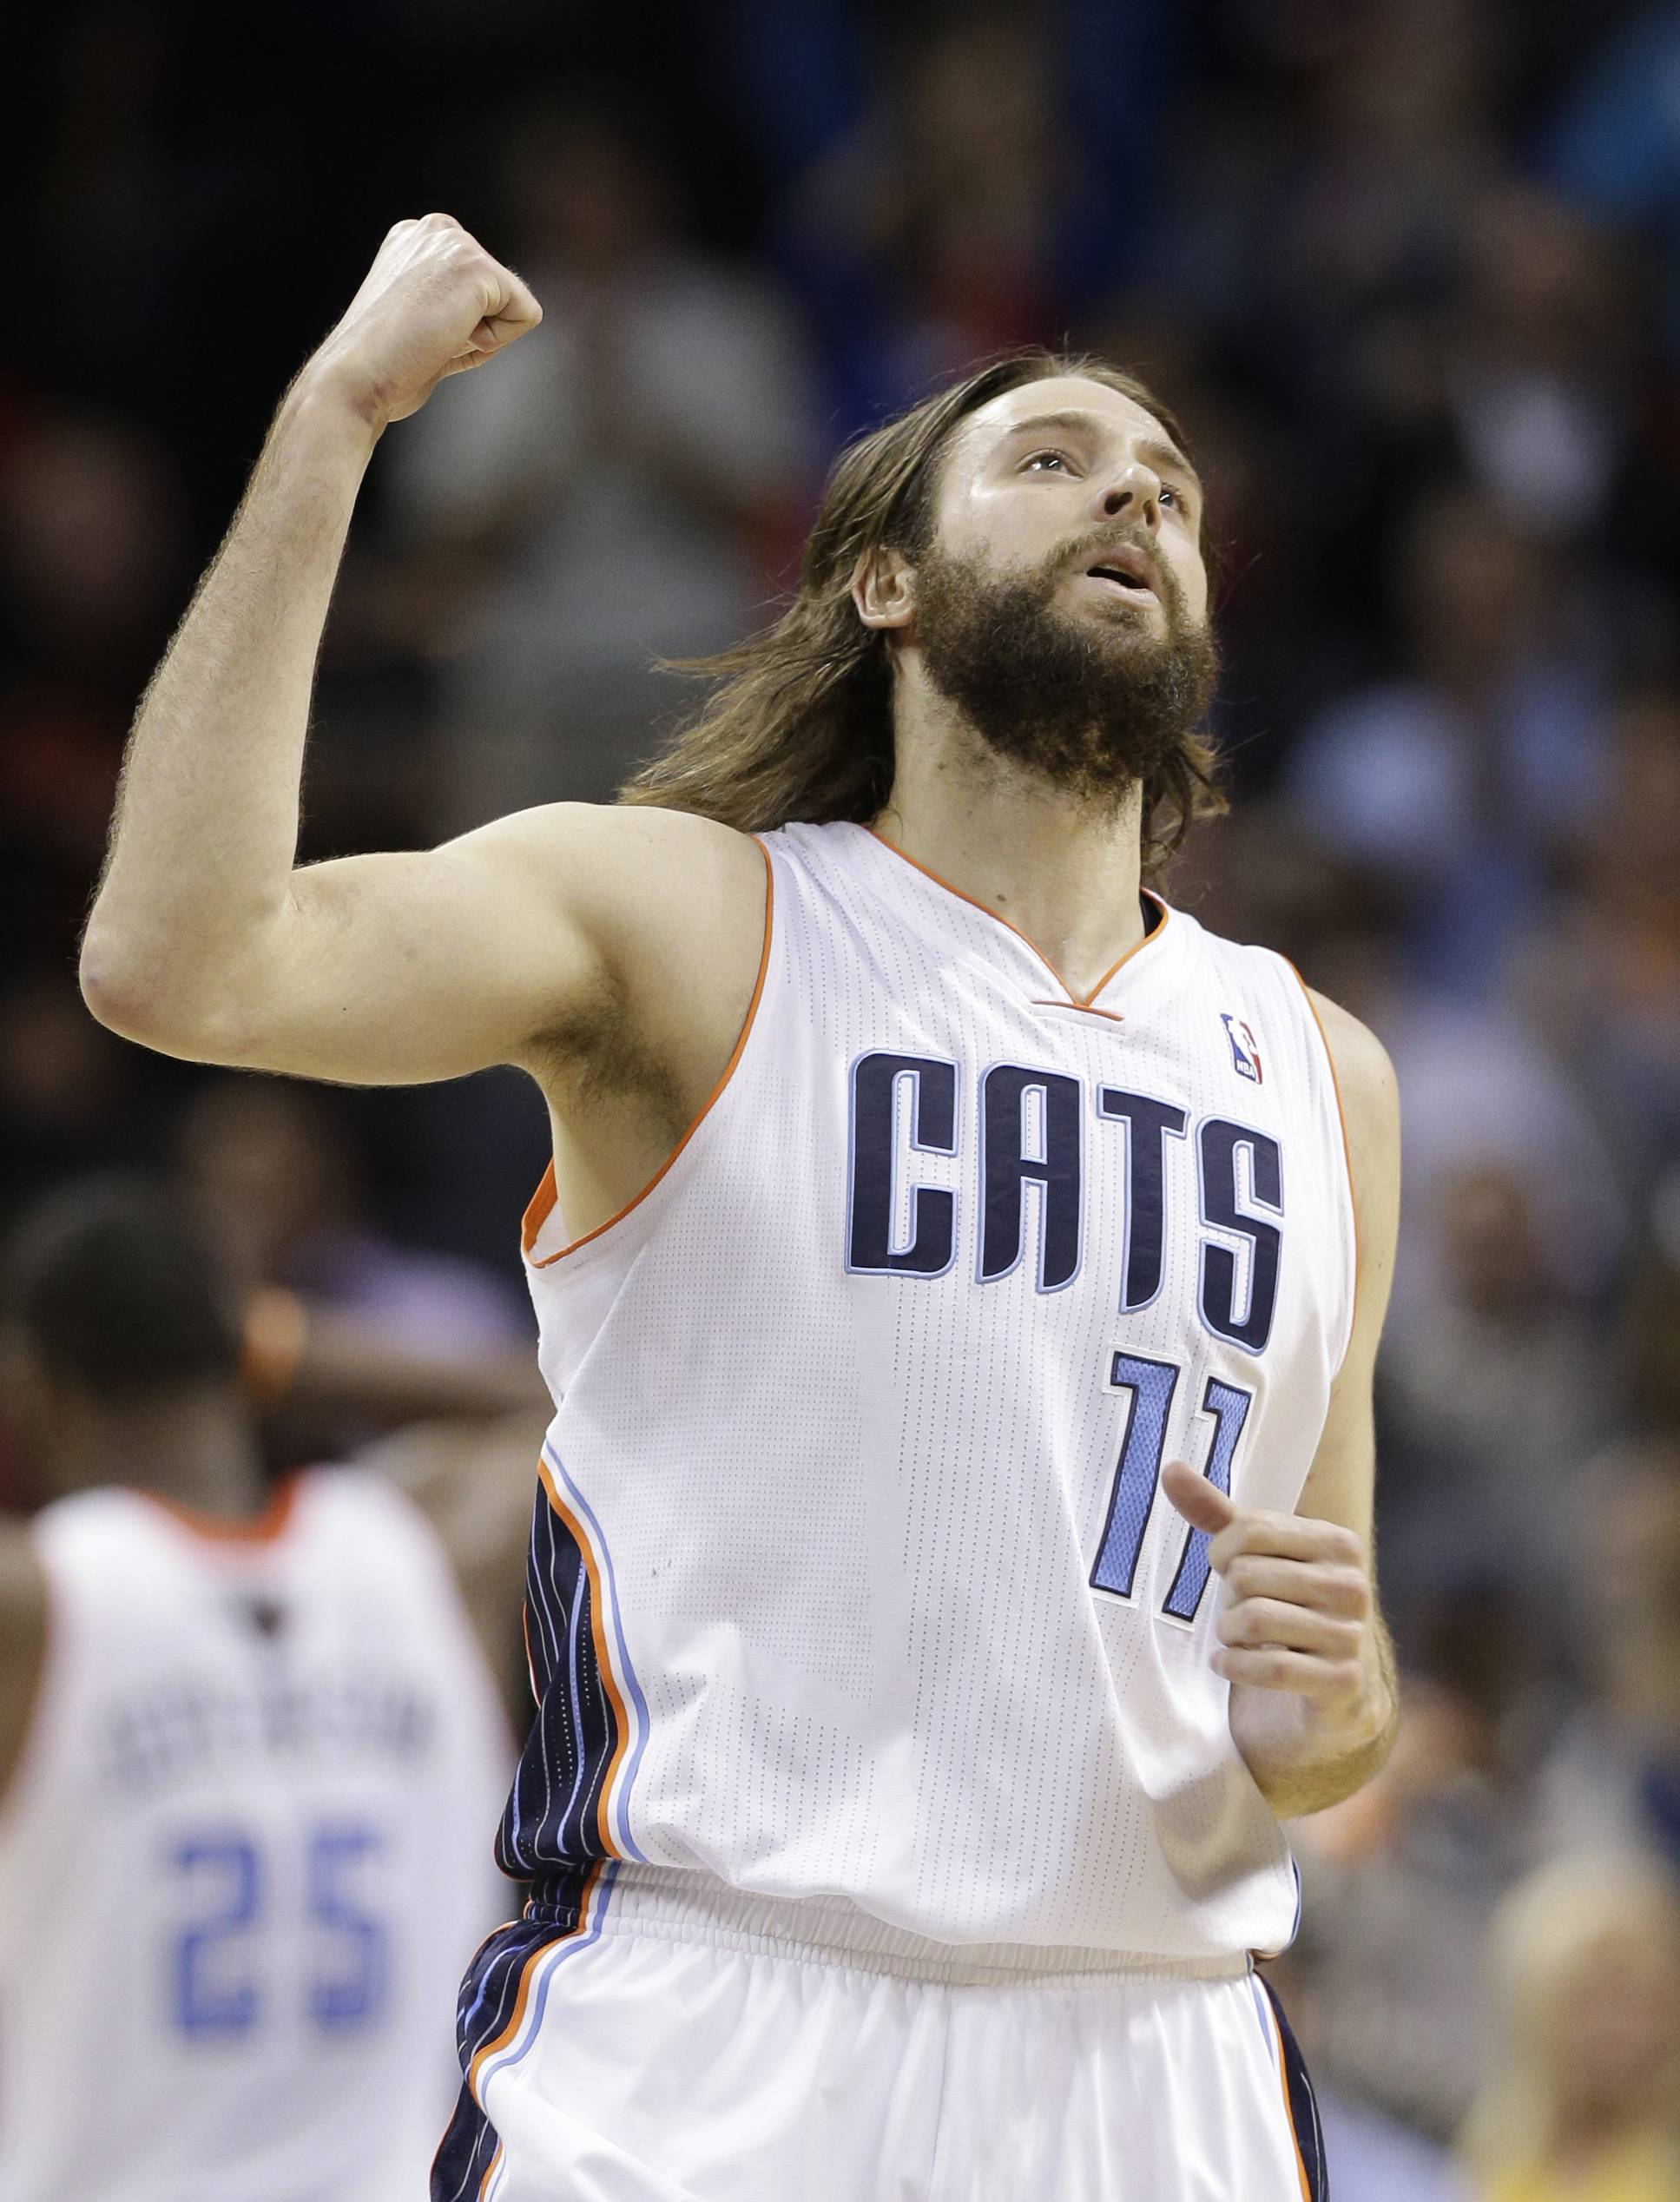 Josh McRoberts has agreed to sign a four-year contract with the Miami Heat, a deal that could be worth about $23 million.